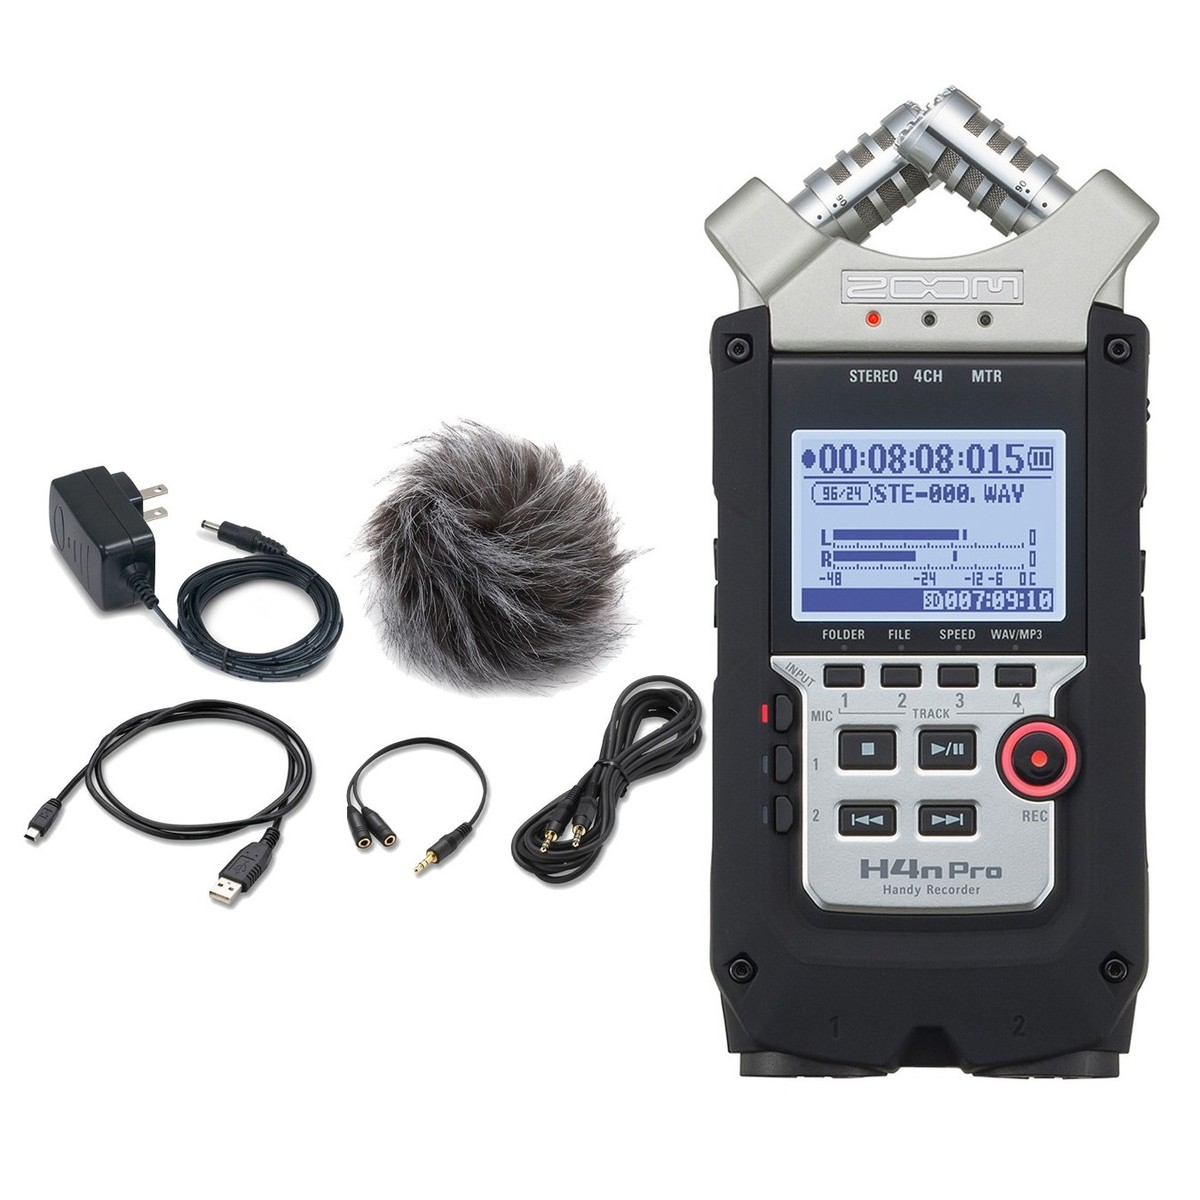 Image of Zoom H4N Pro Handy Recorder with Accessory Pack